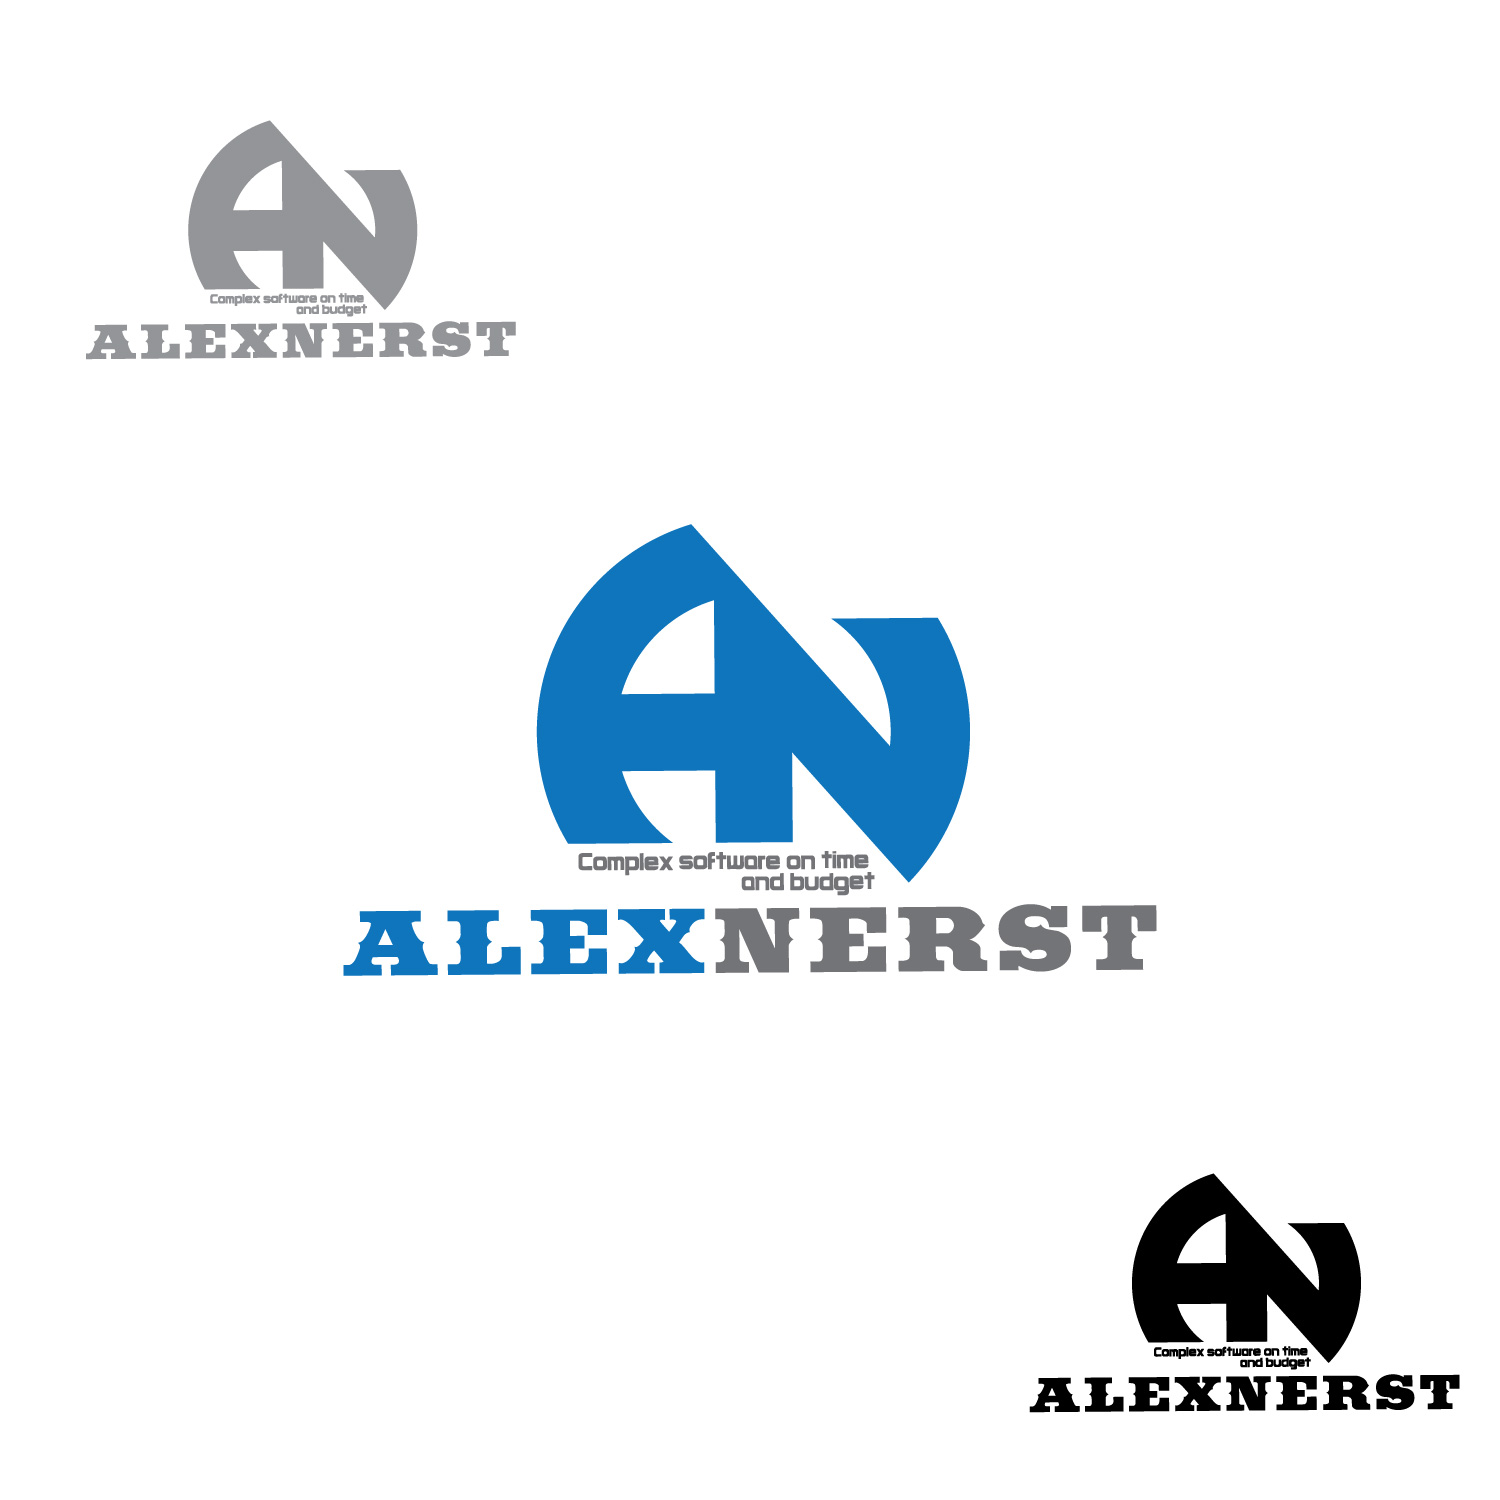 Logo Design by lagalag - Entry No. 10 in the Logo Design Contest Artistic Logo Design for Alex Nerst.